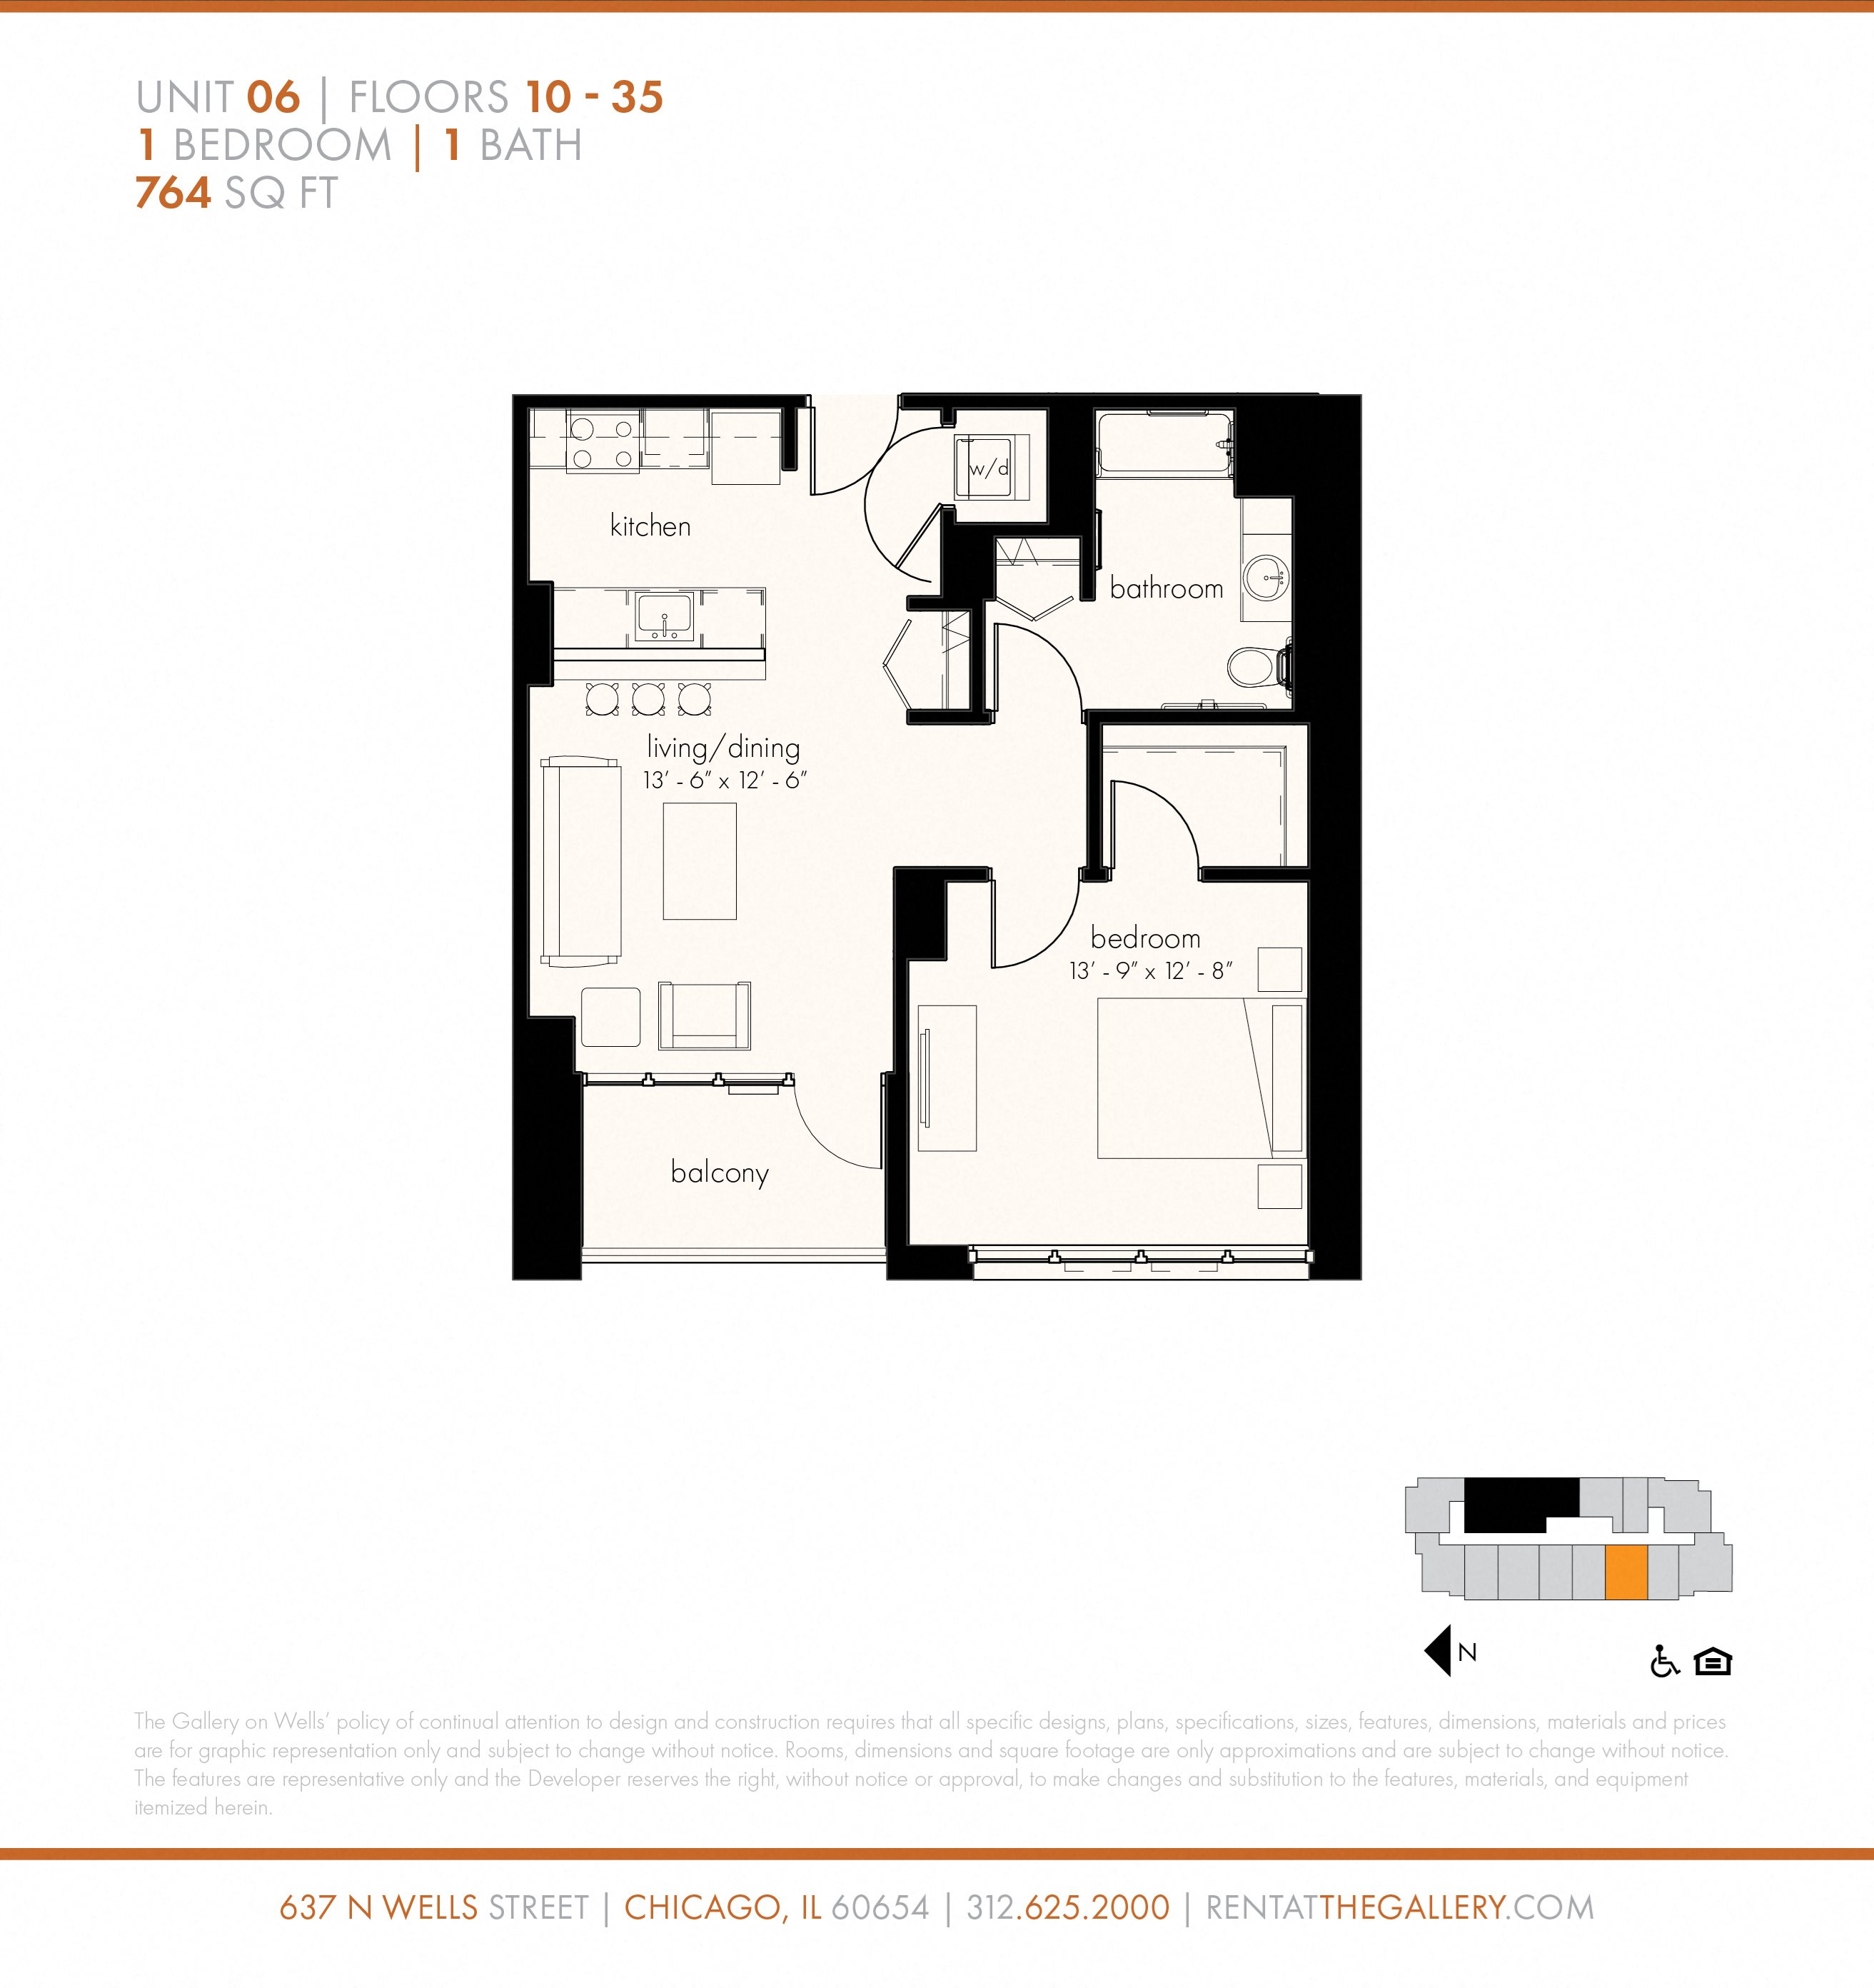 One Bedroom (764 sf) Floor Plan 7